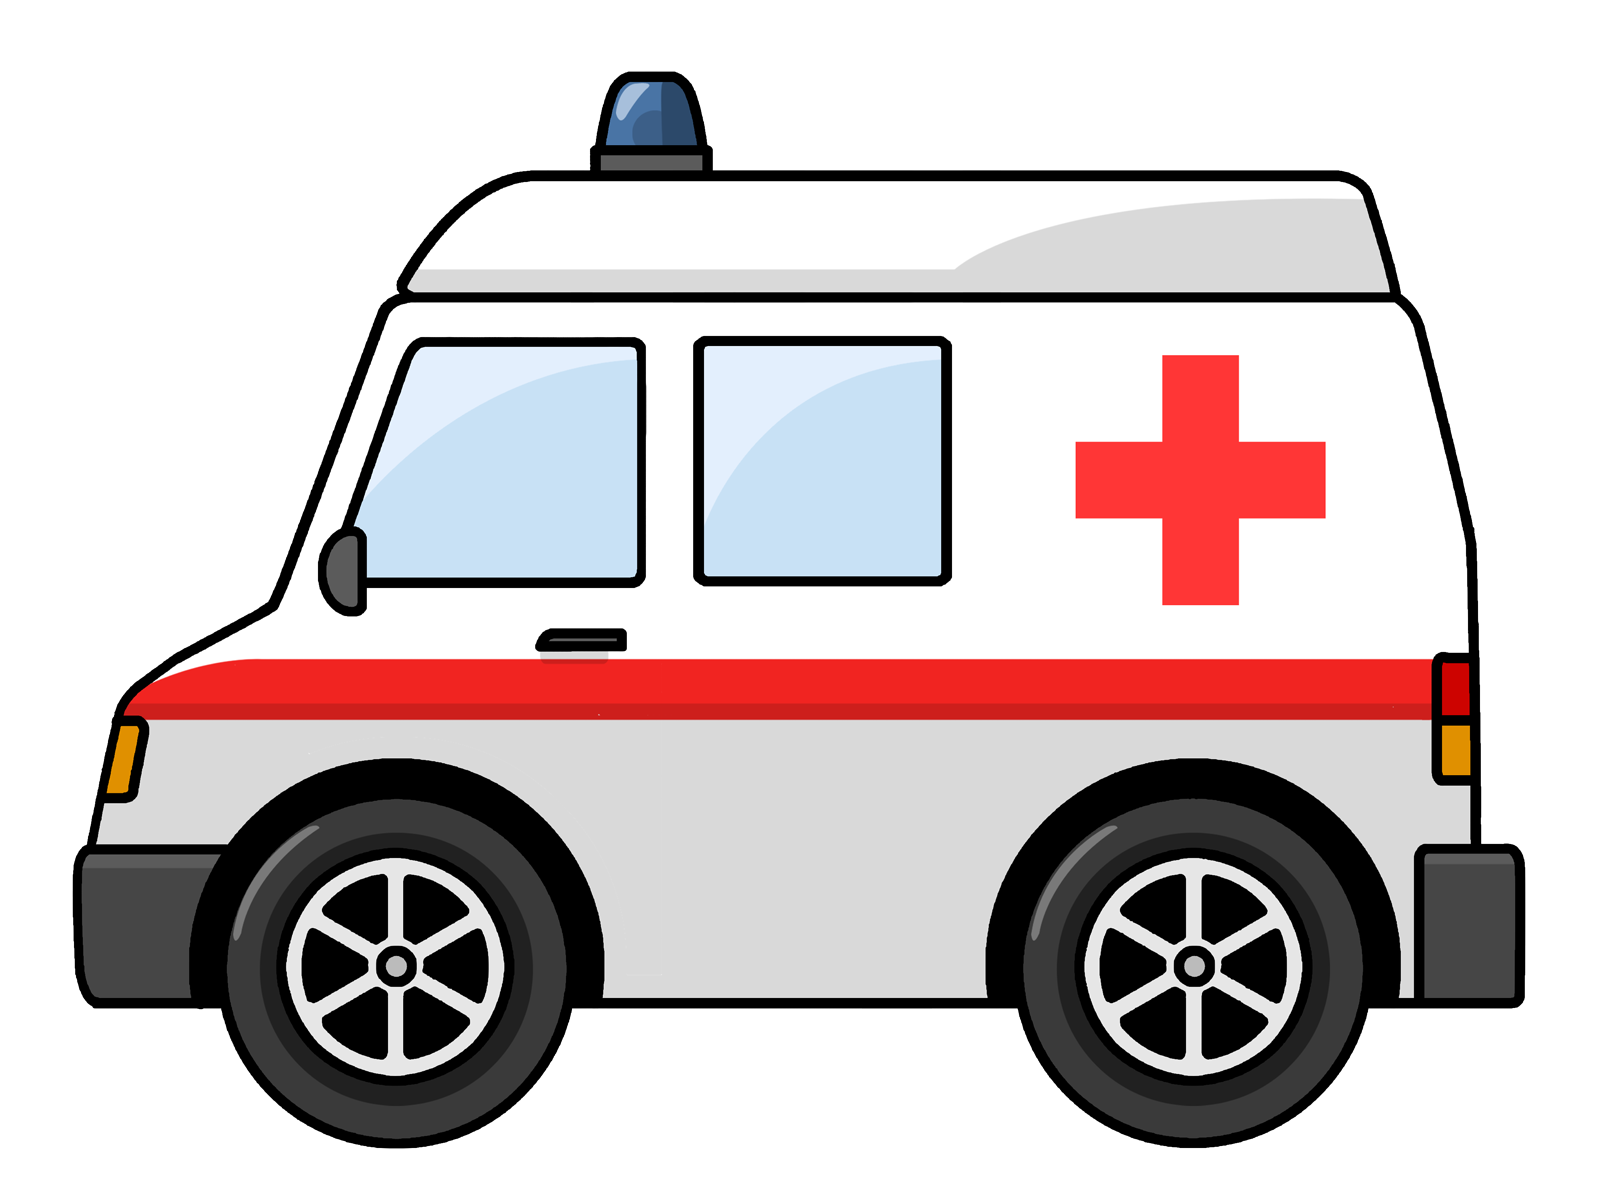 Emergency clipart police car Ambulance Free ClipartAndScrap art to